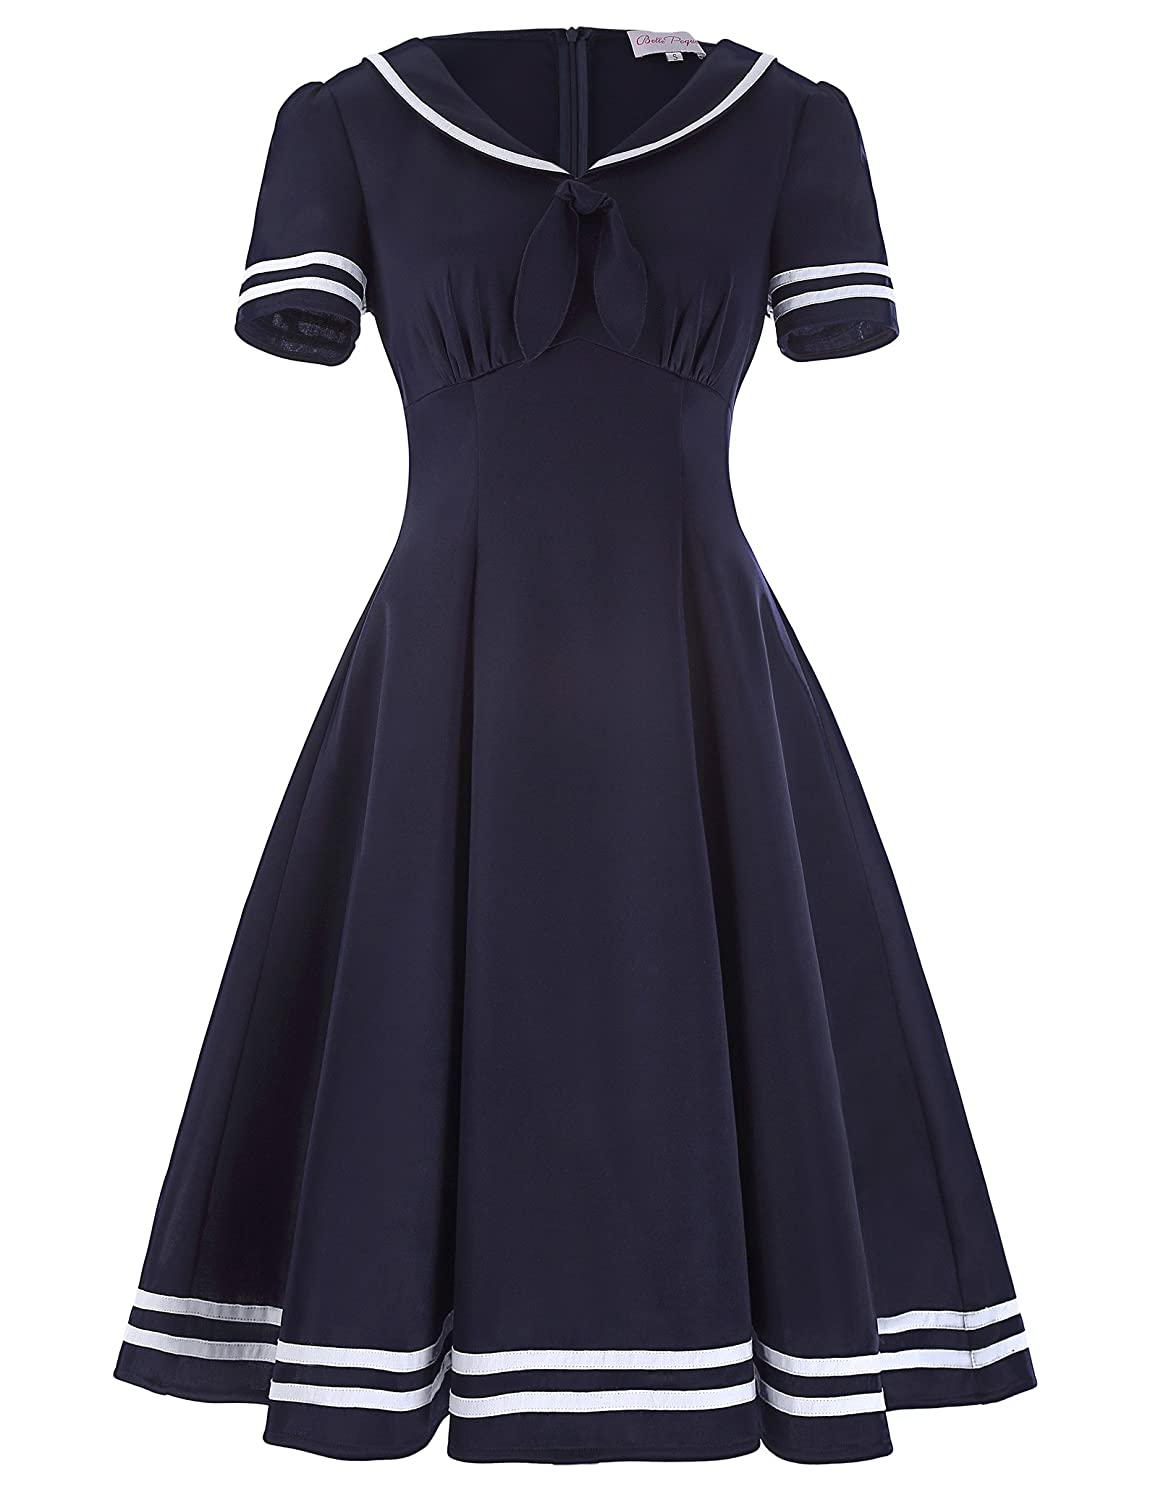 1940s Fashion Advice for Short Women Belle Poque Womens Retro Sailor Dress Short Sleeve Cocktail Party Swing Dress $29.99 AT vintagedancer.com